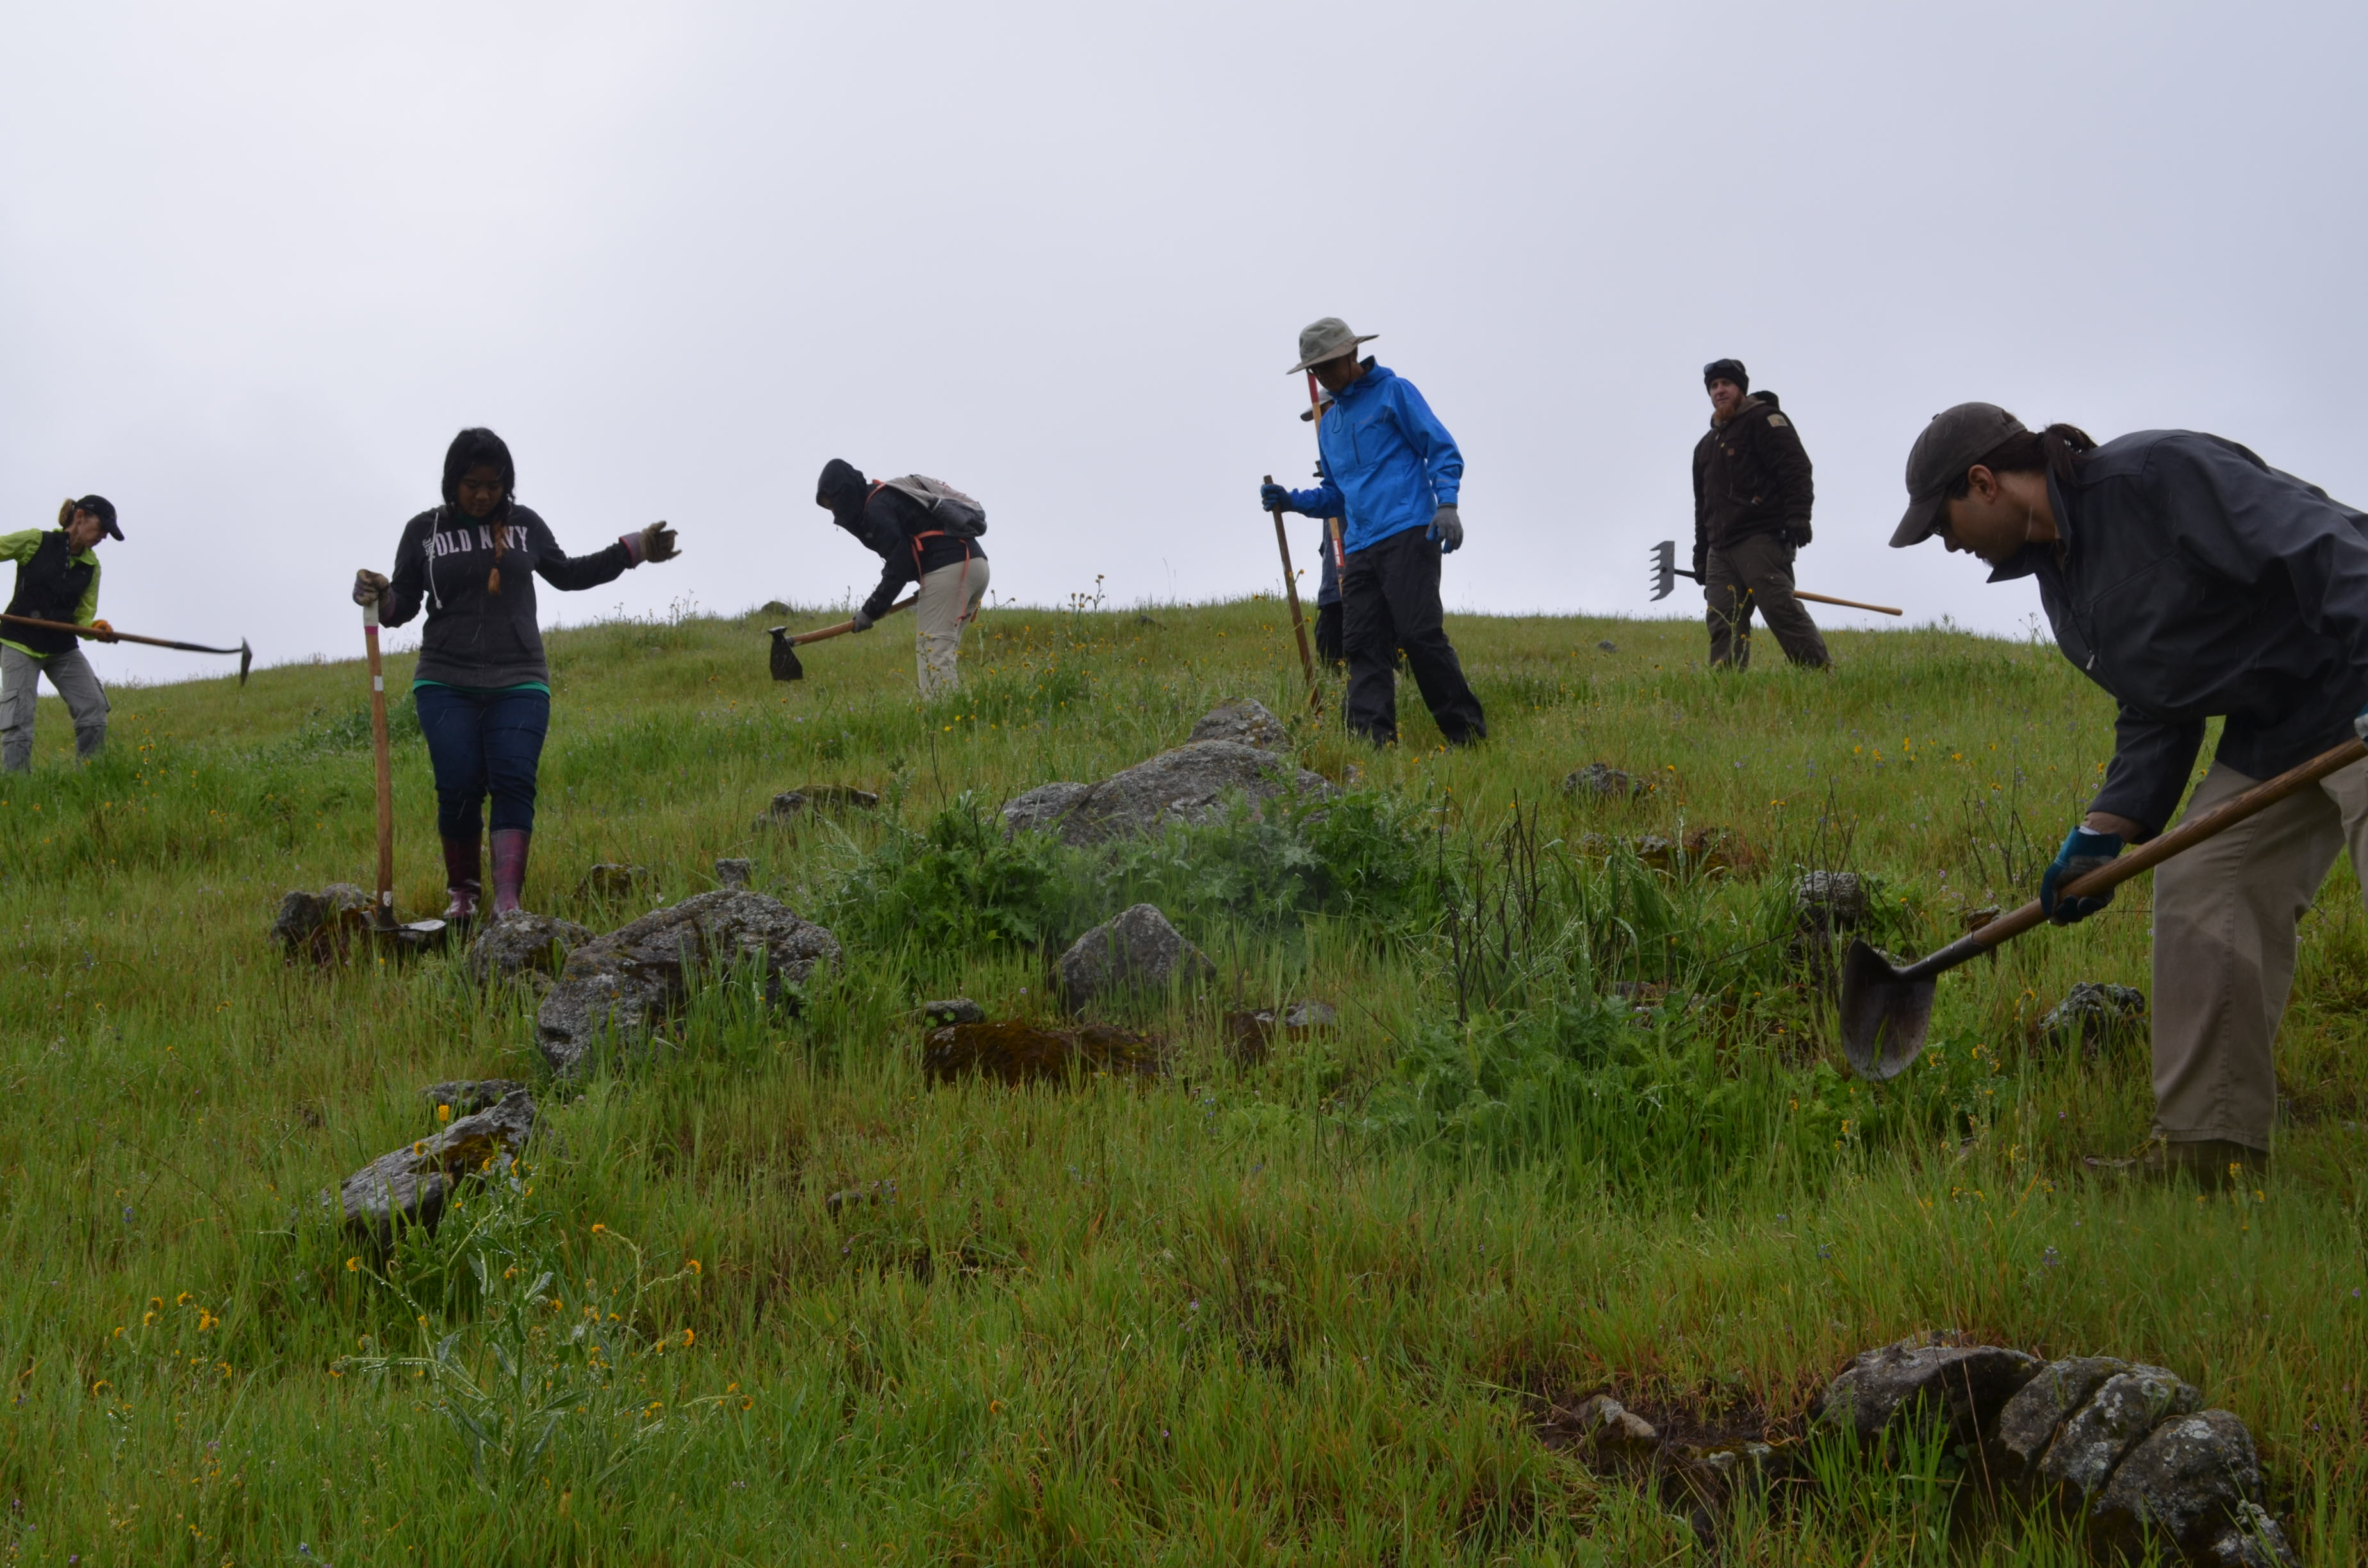 Seven volunteers with jackets and hoes clearing weeds on a green hillside